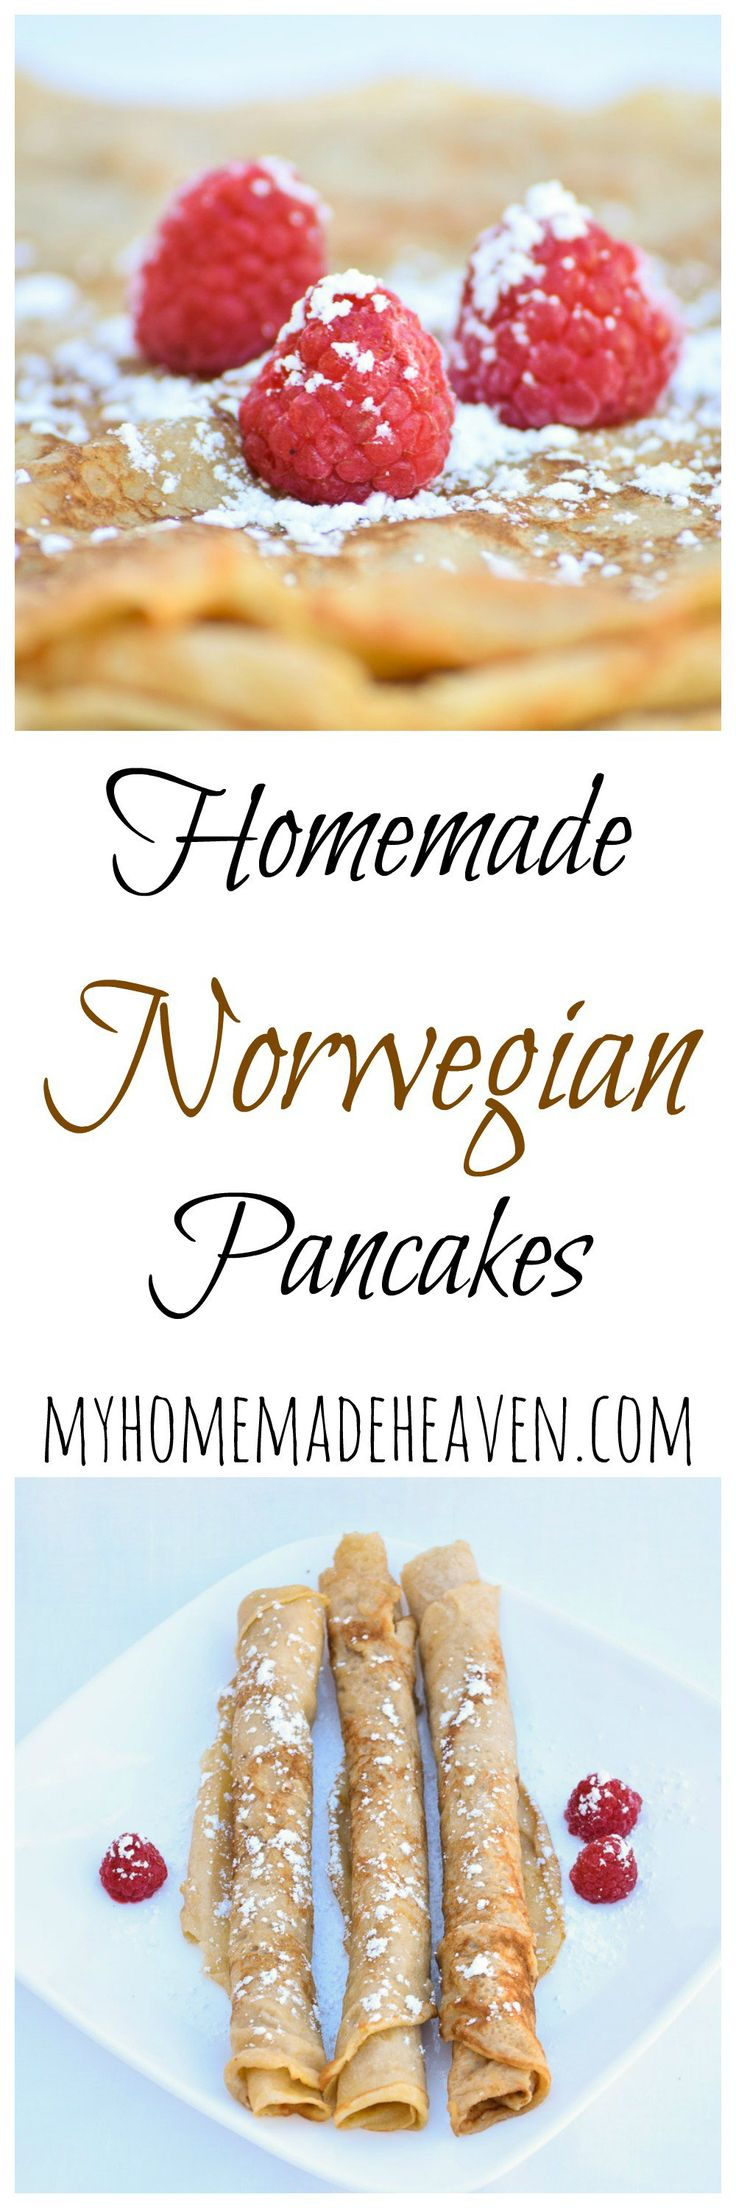 Many years ago I had the opportunity to live in Norway for 18 months. One of the things that I absolutely loved about Norway was their food. Some of it took some getting used to, but much of it was so amazing that I couldn't seem to get enough! Norwegian pancakes were one of those....Read More »